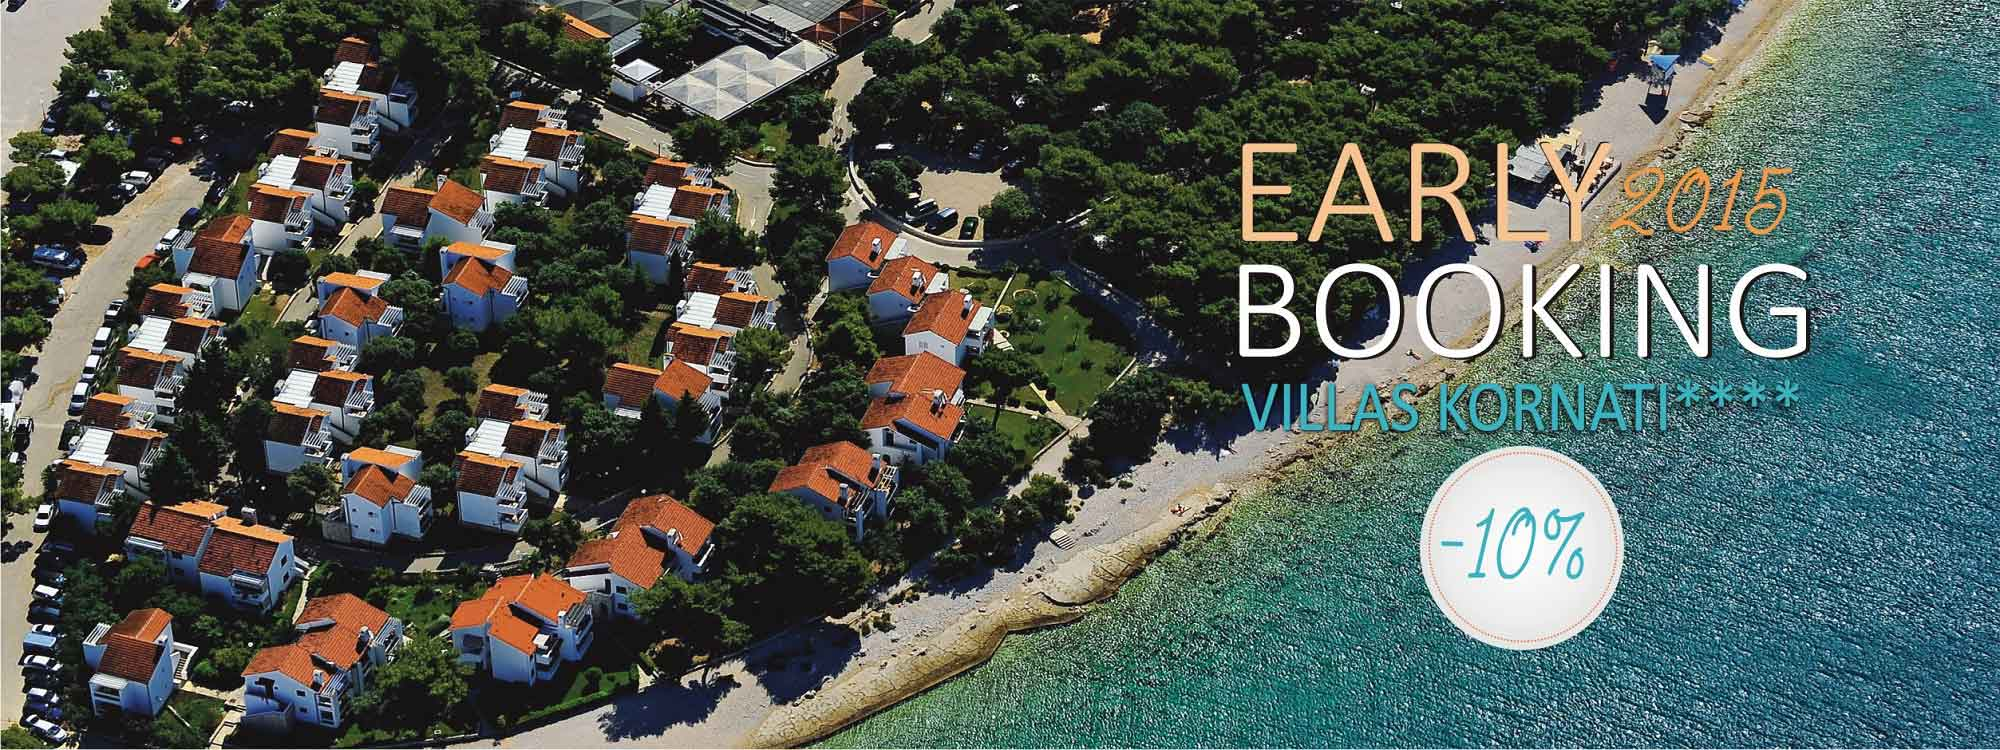 Solaris_villlas_kornati_early-booking_offer_discount_10_special_offer